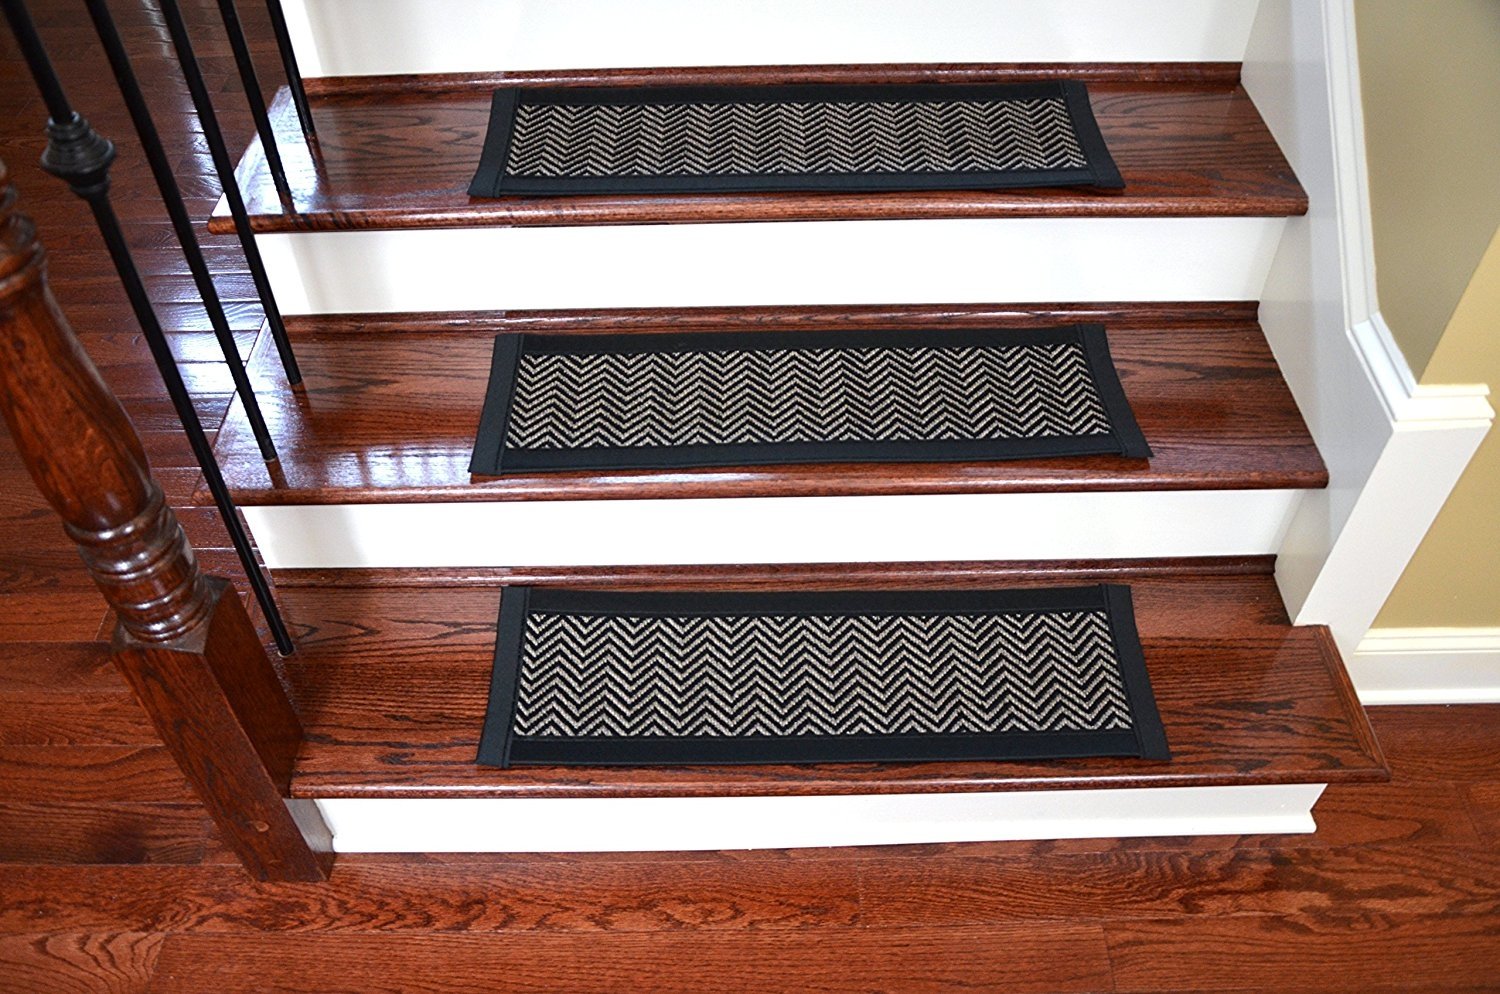 Amazon Dean Hatteras Flatweave Indooroutdoor Carpet Stair Pertaining To Indoor Outdoor Carpet Stair Treads (Image 3 of 15)